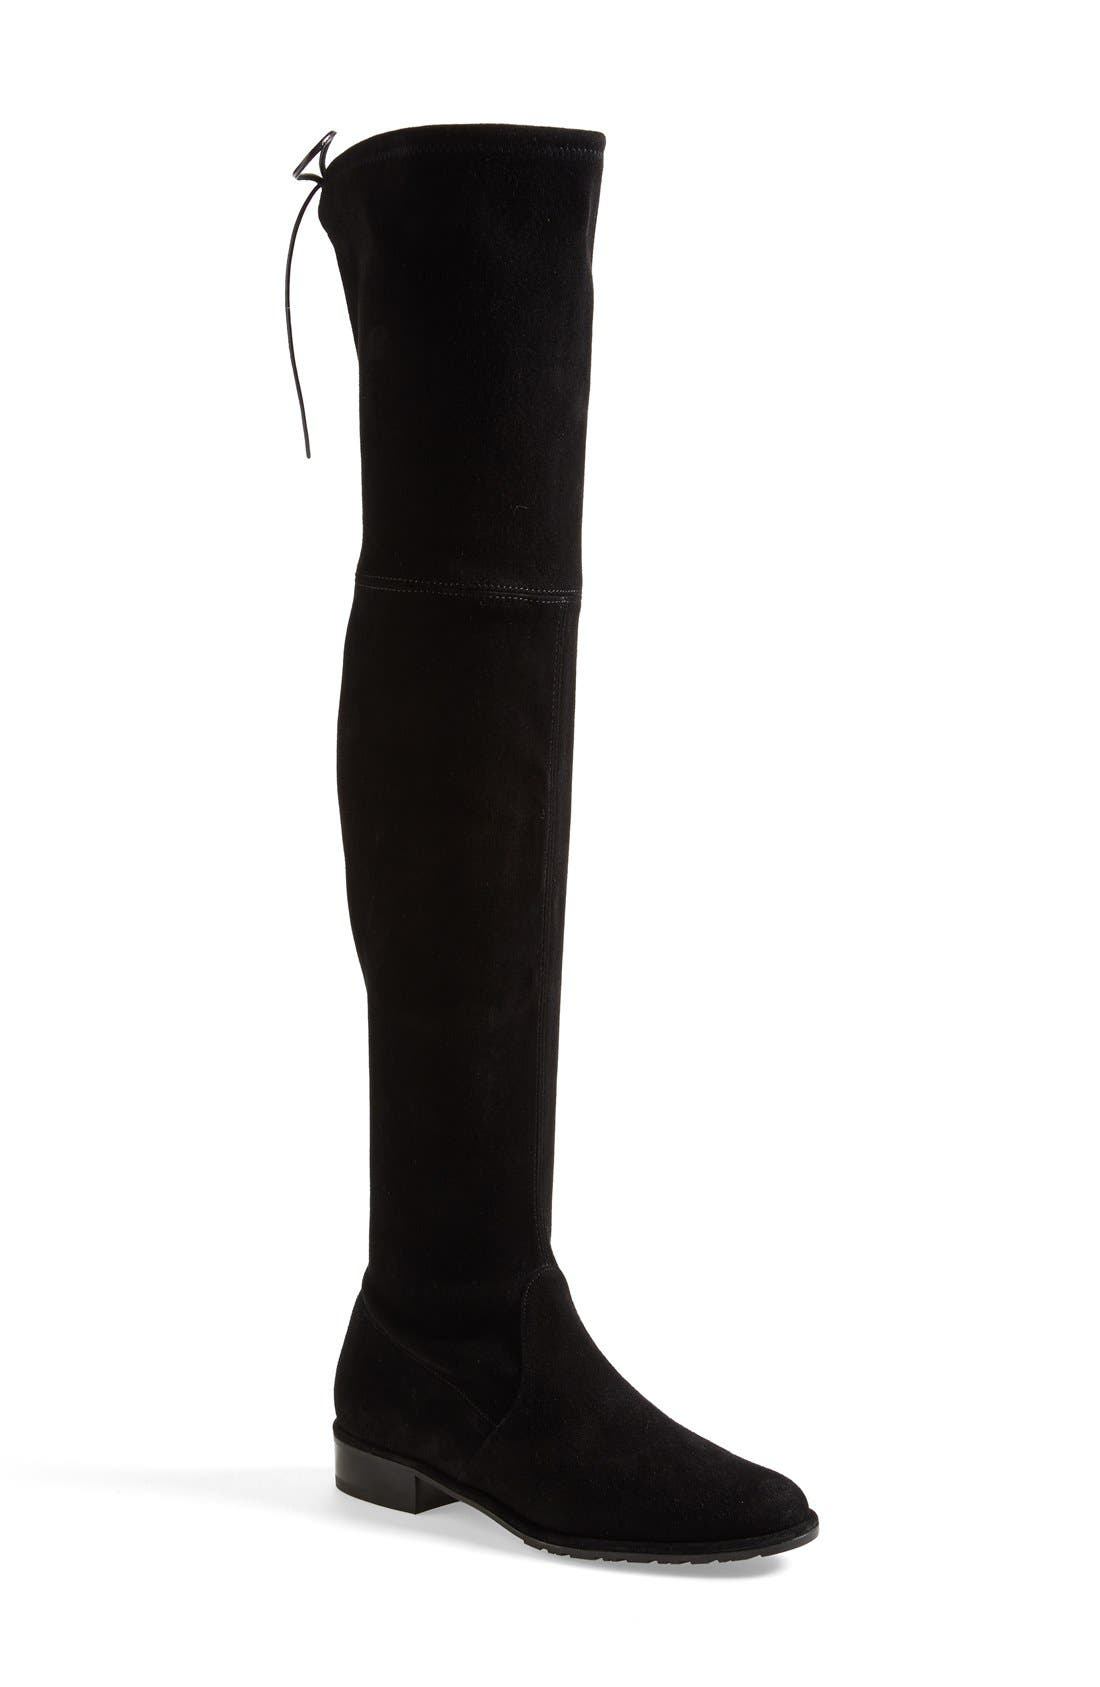 Alternate Image 1 Selected - Stuart Weitzman 'Lowland' Over the Knee Boot (Women)